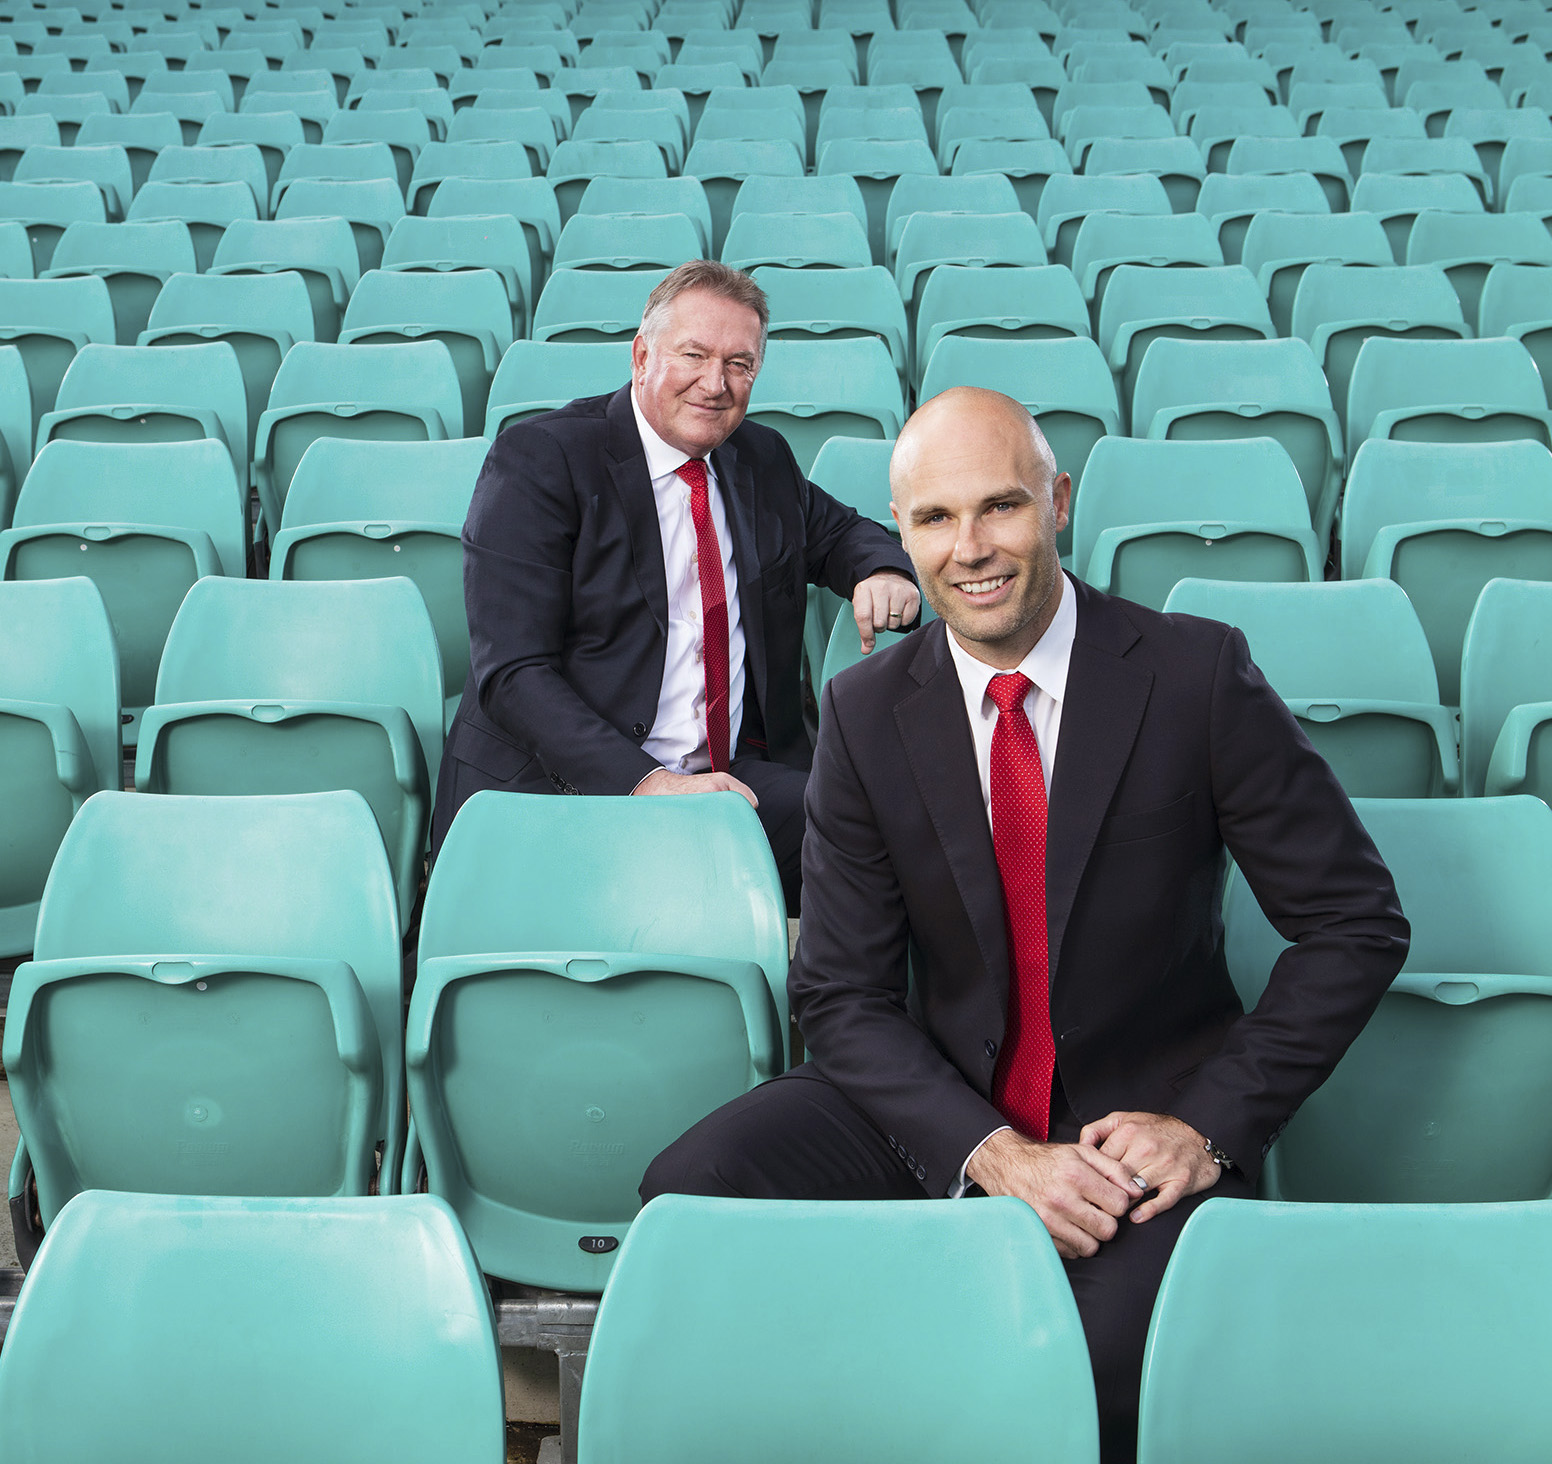 Editorial location Sydney Swans CEO photography Andrew Ireland & Tom Harley AFL HRM SCG grandstand seated